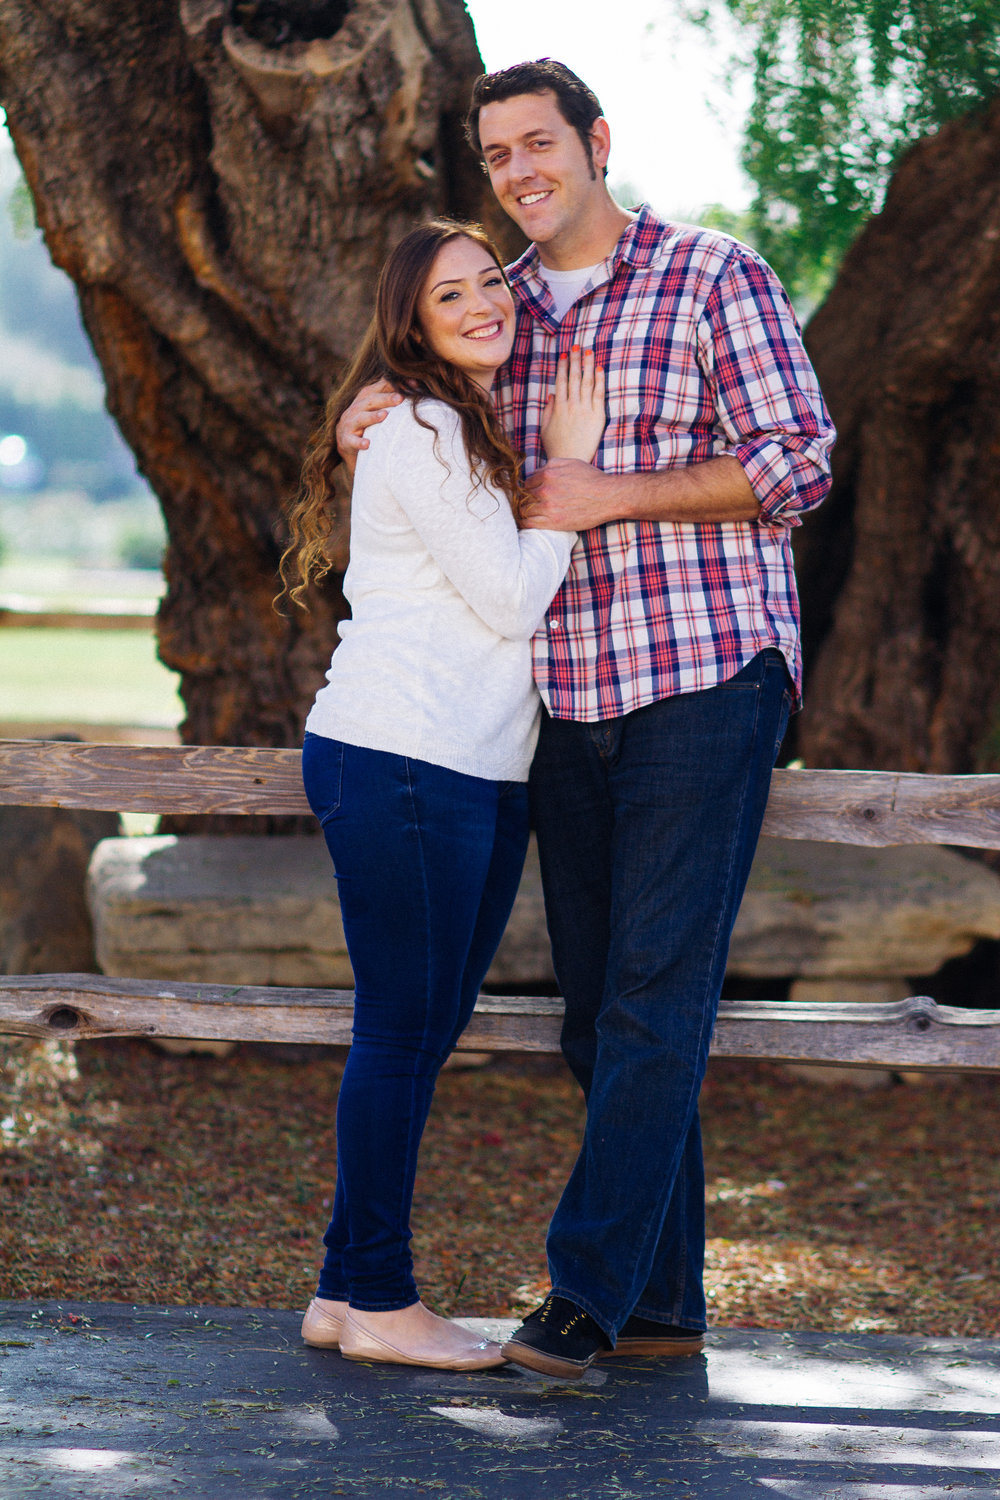 AllisonAndrew_Engagement_CShankel_Edit1-8.jpg